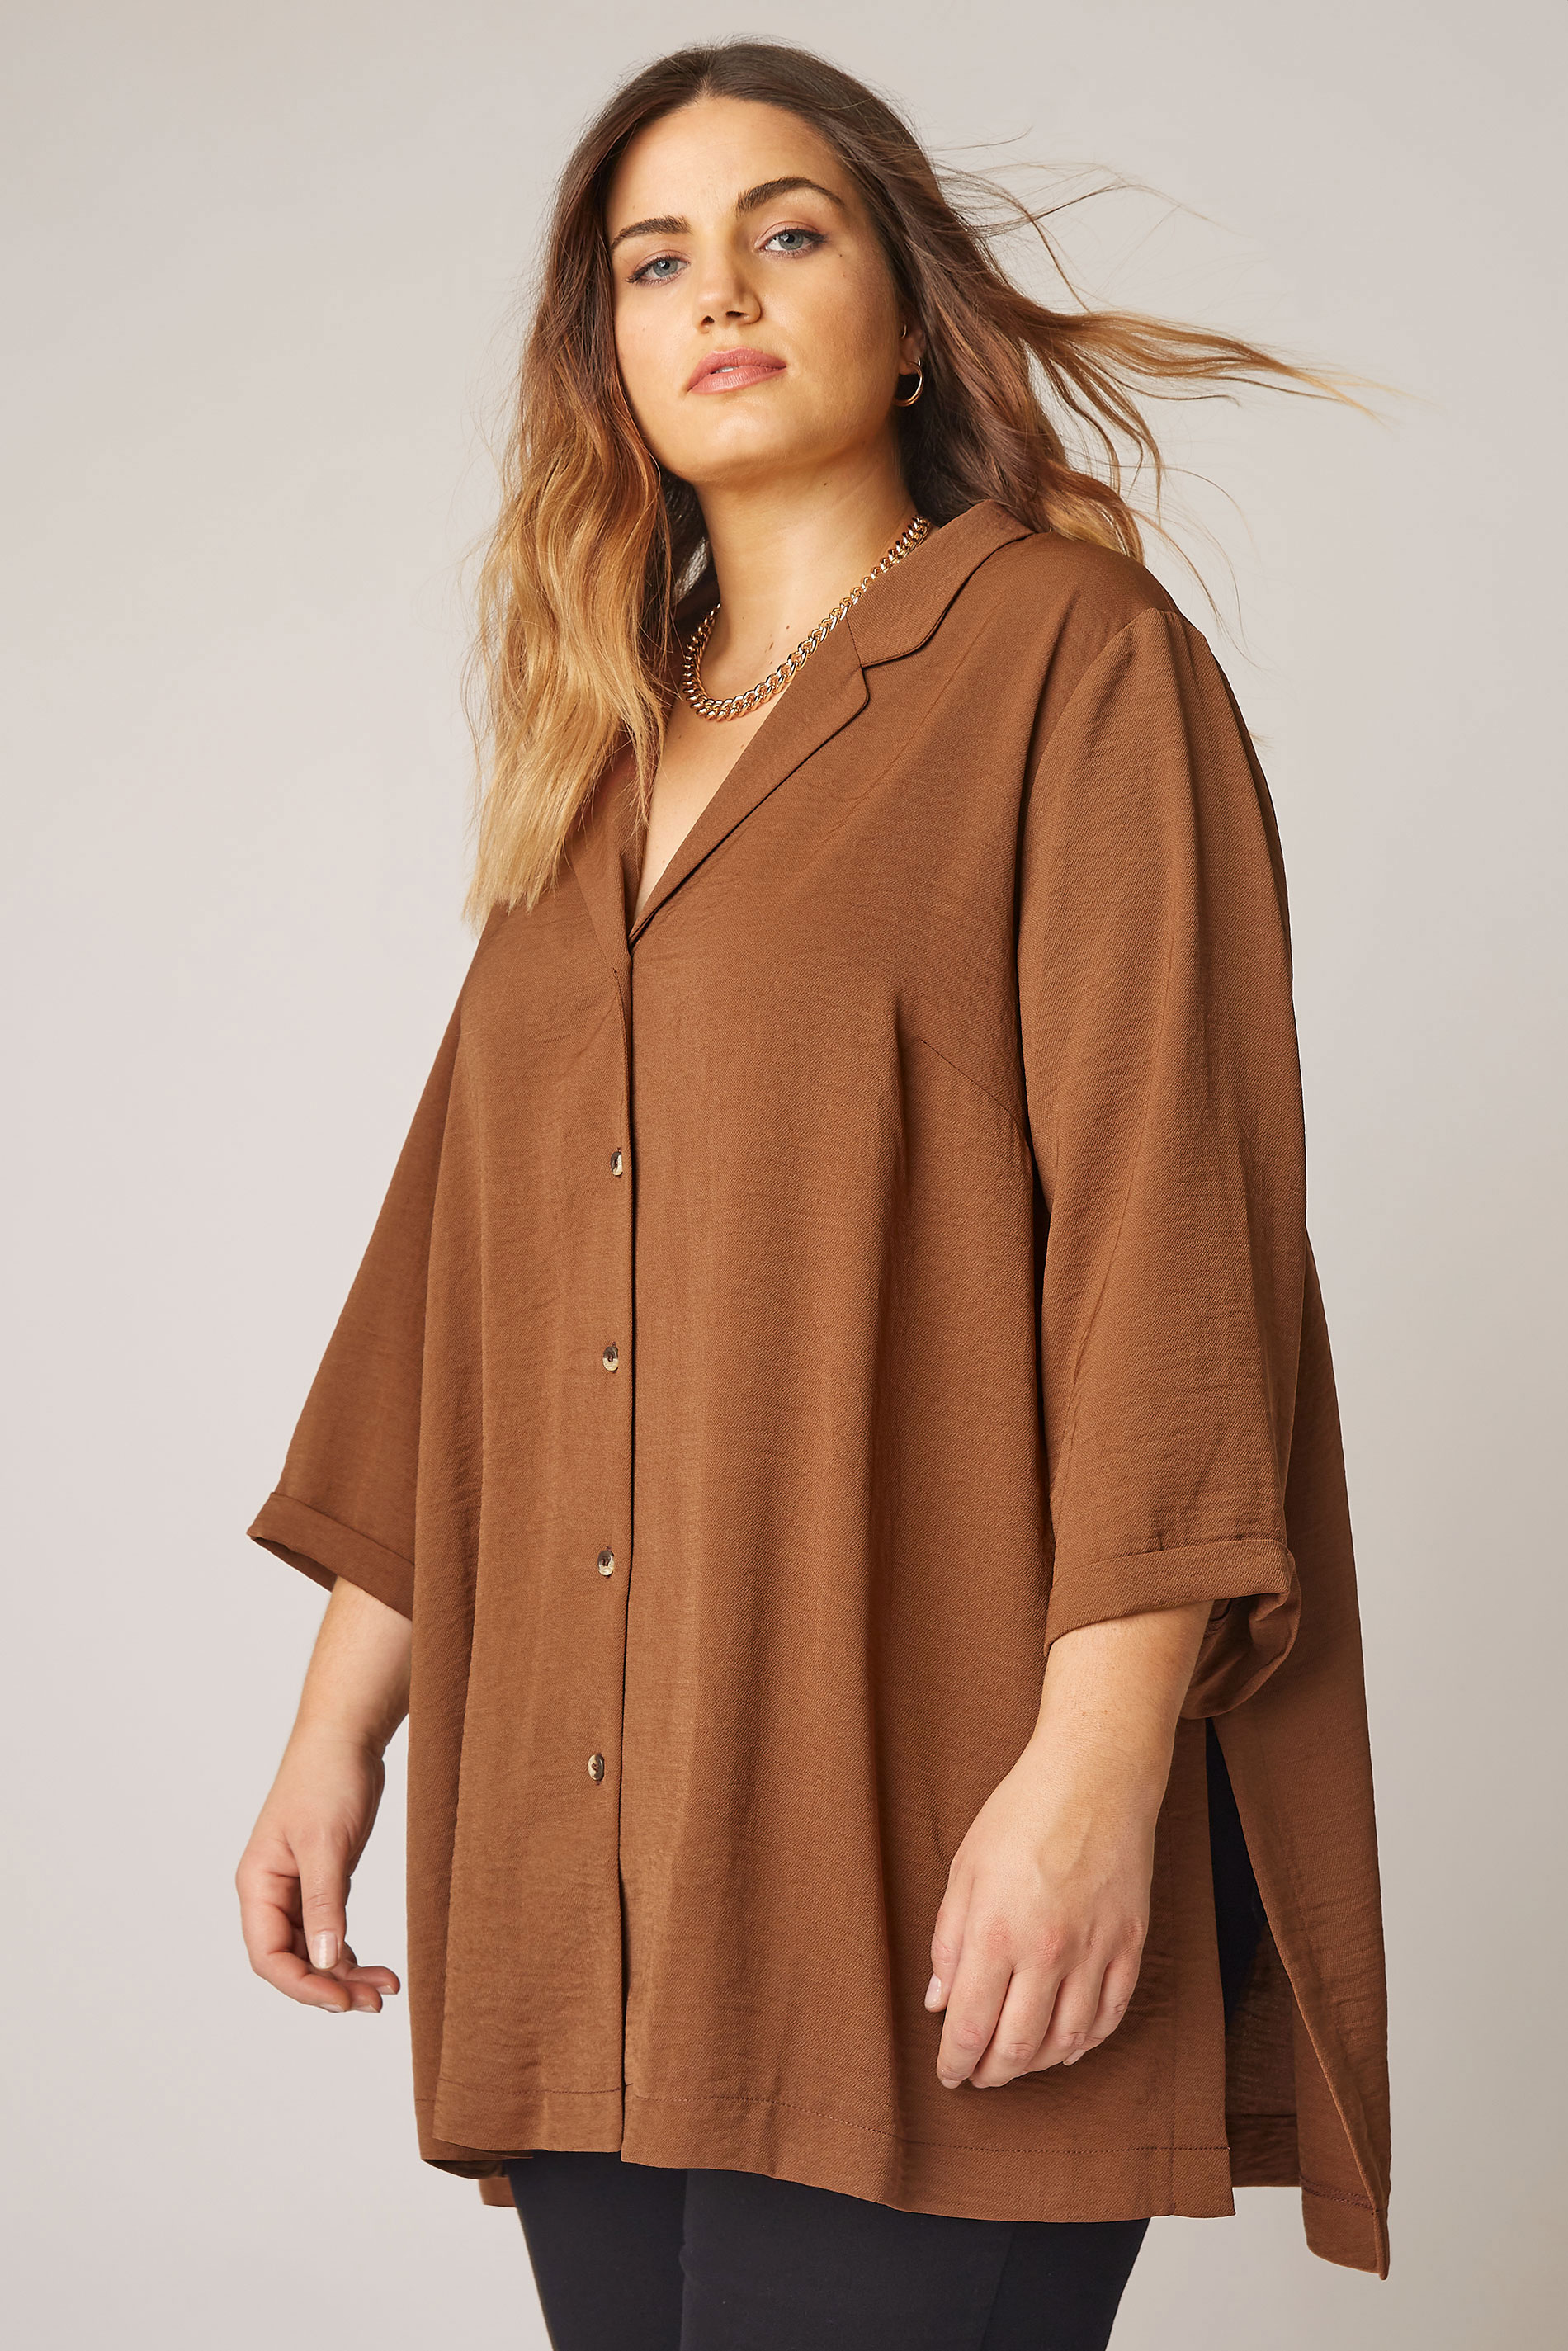 THE LIMITED EDIT Brown Open Collar Blouse_A.jpg